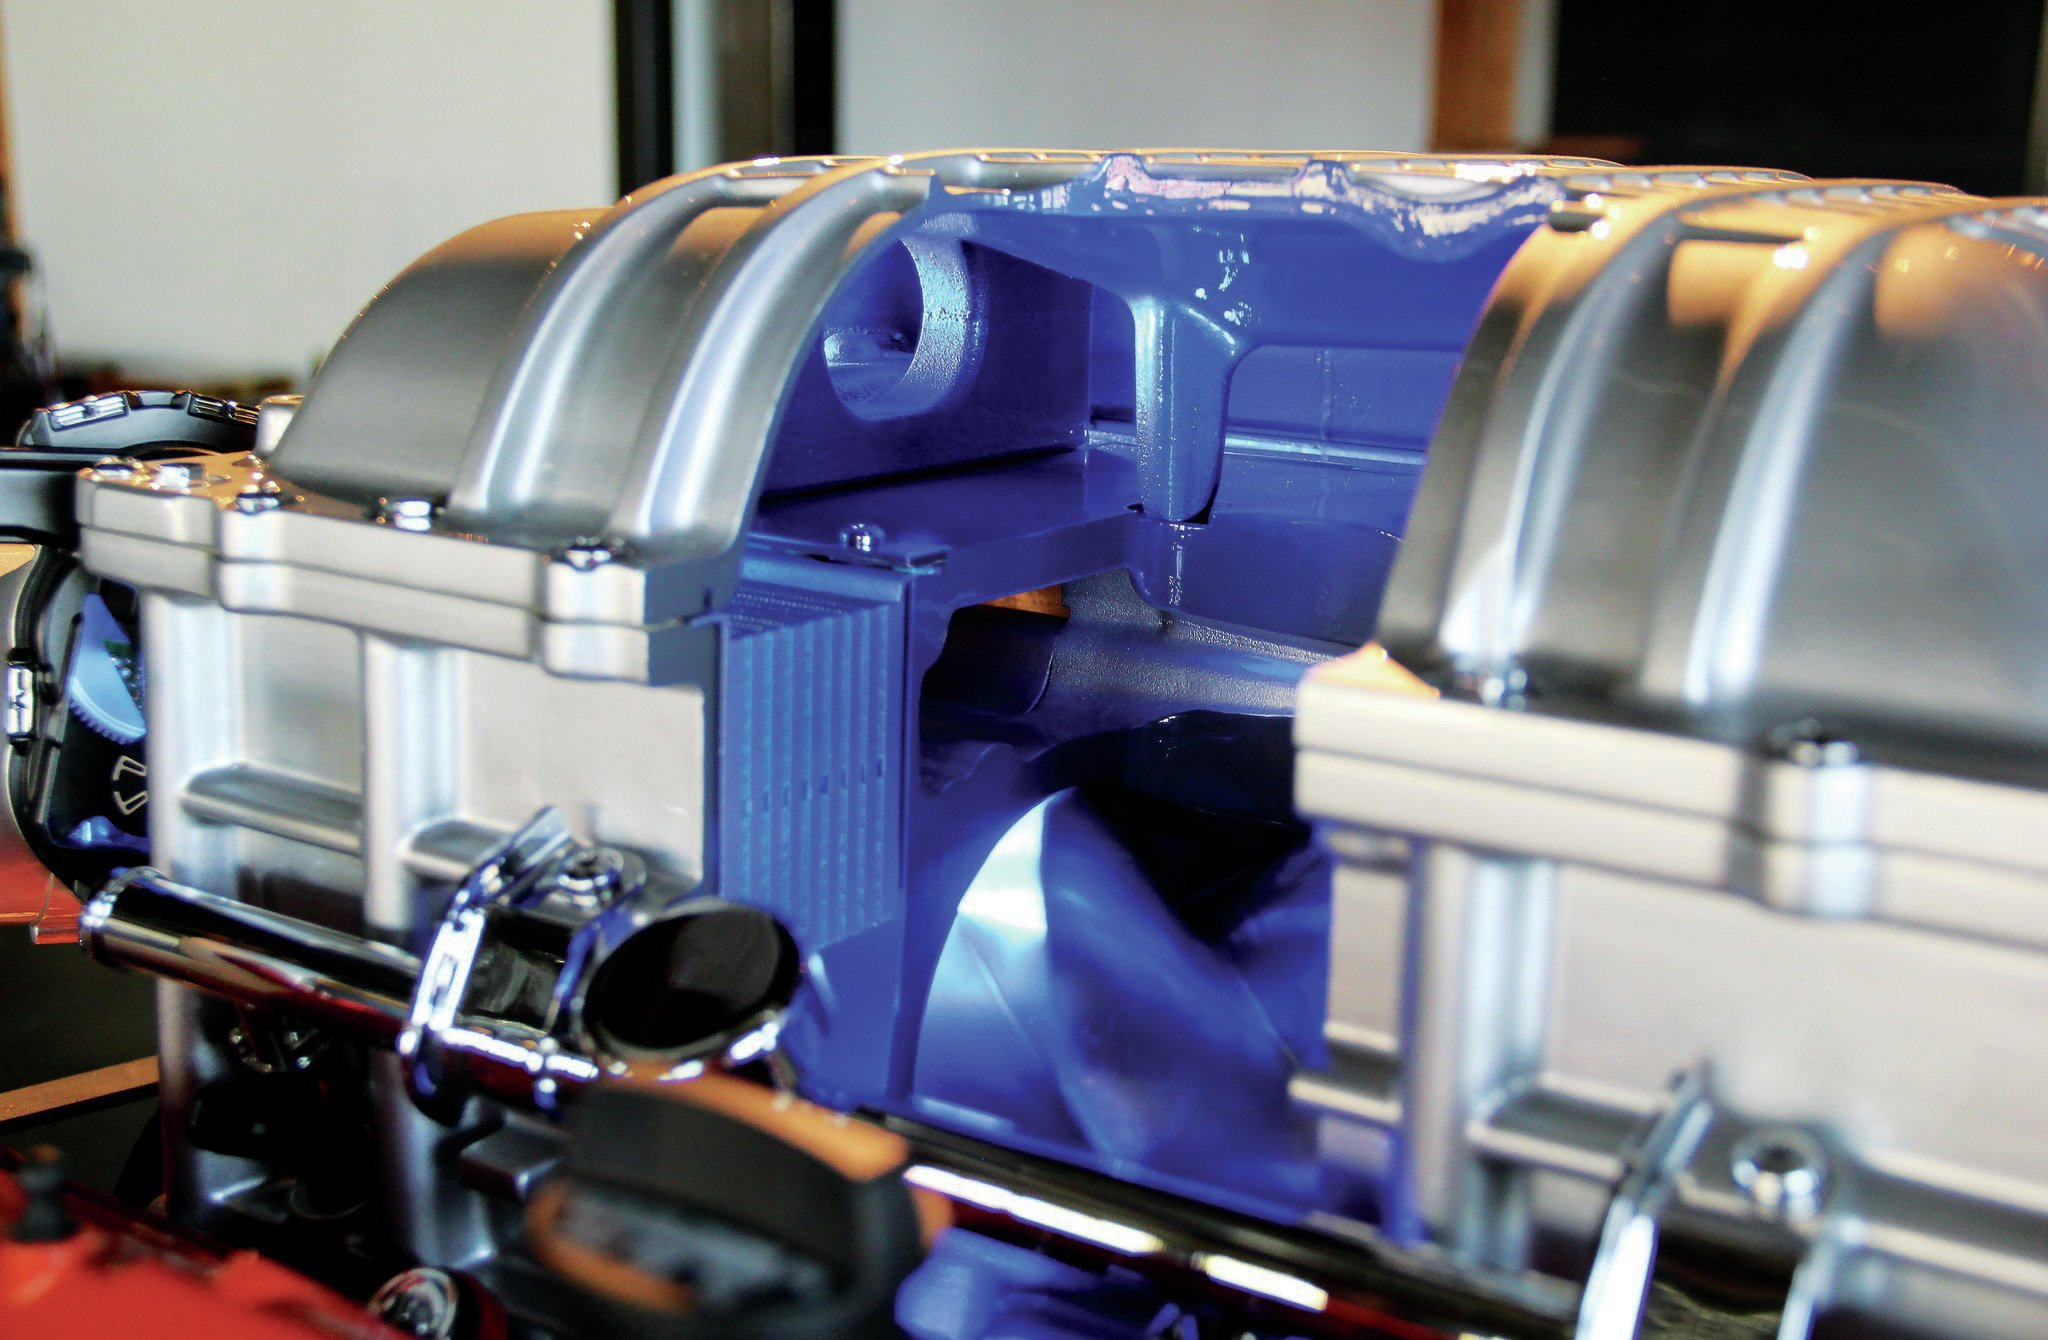 The supercharger also has two internal air-to-water charge coolers. Pressurized air is forced through these coolers into the intake ports lowering temperatures from about 248 degrees Fahrenheit to about 140 degrees.